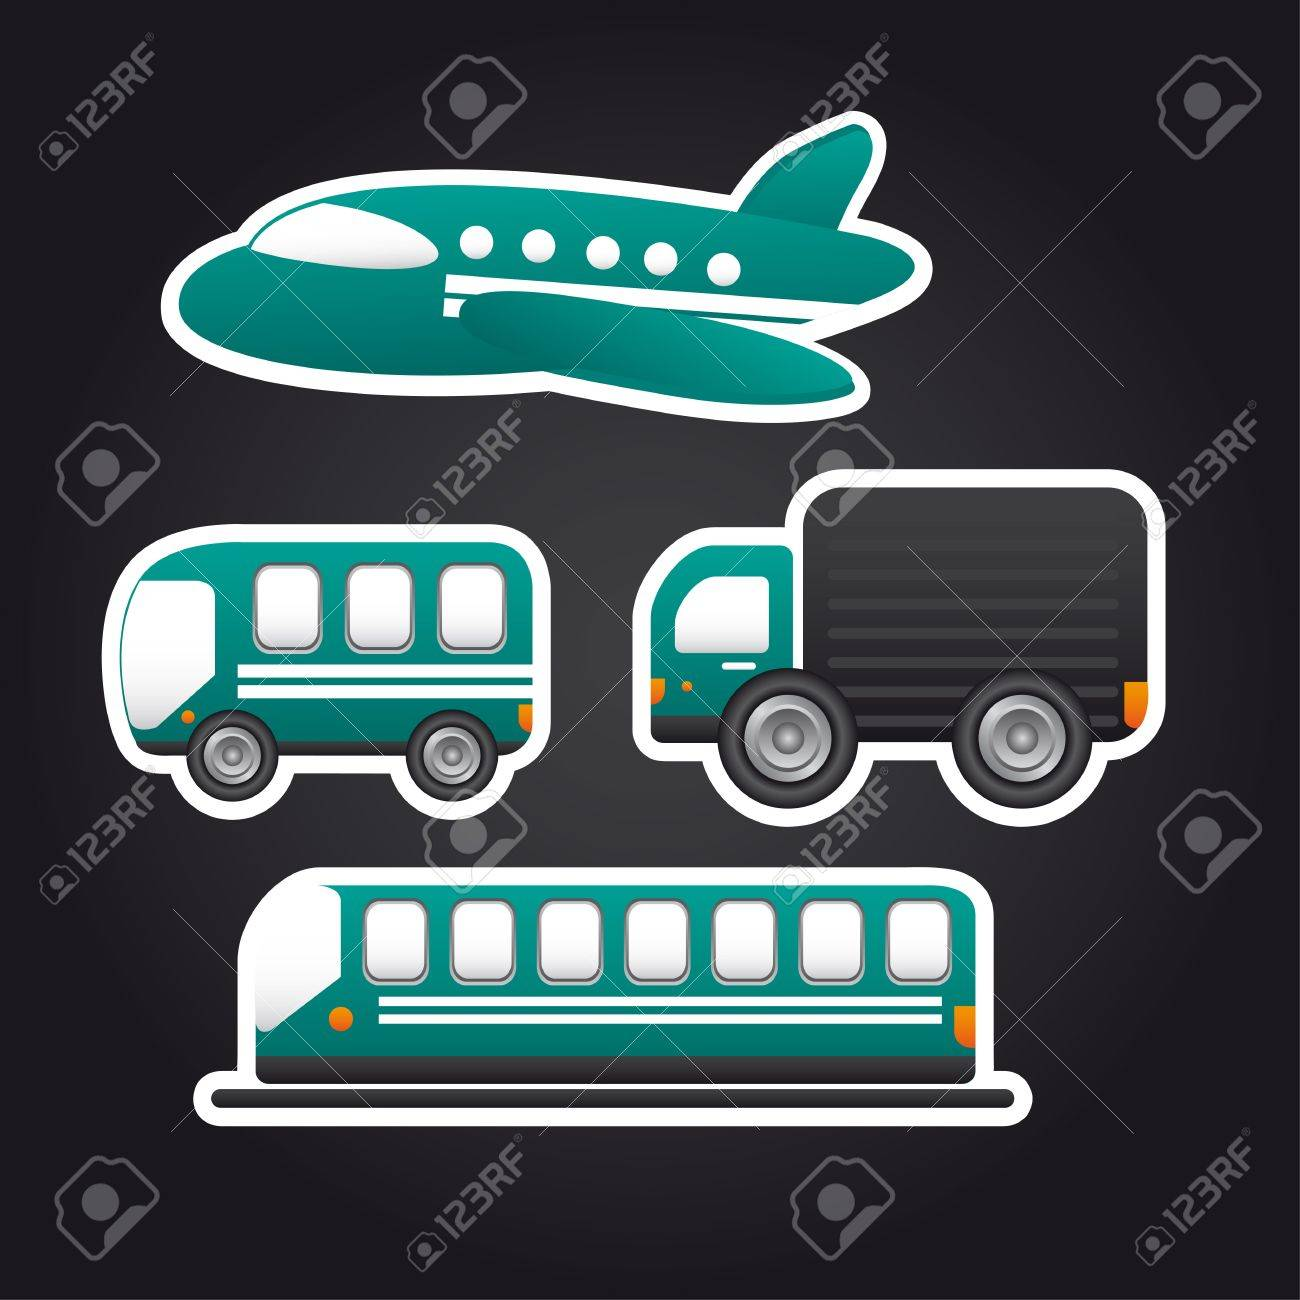 transportation icons over black background. Stock Vector - 13439077